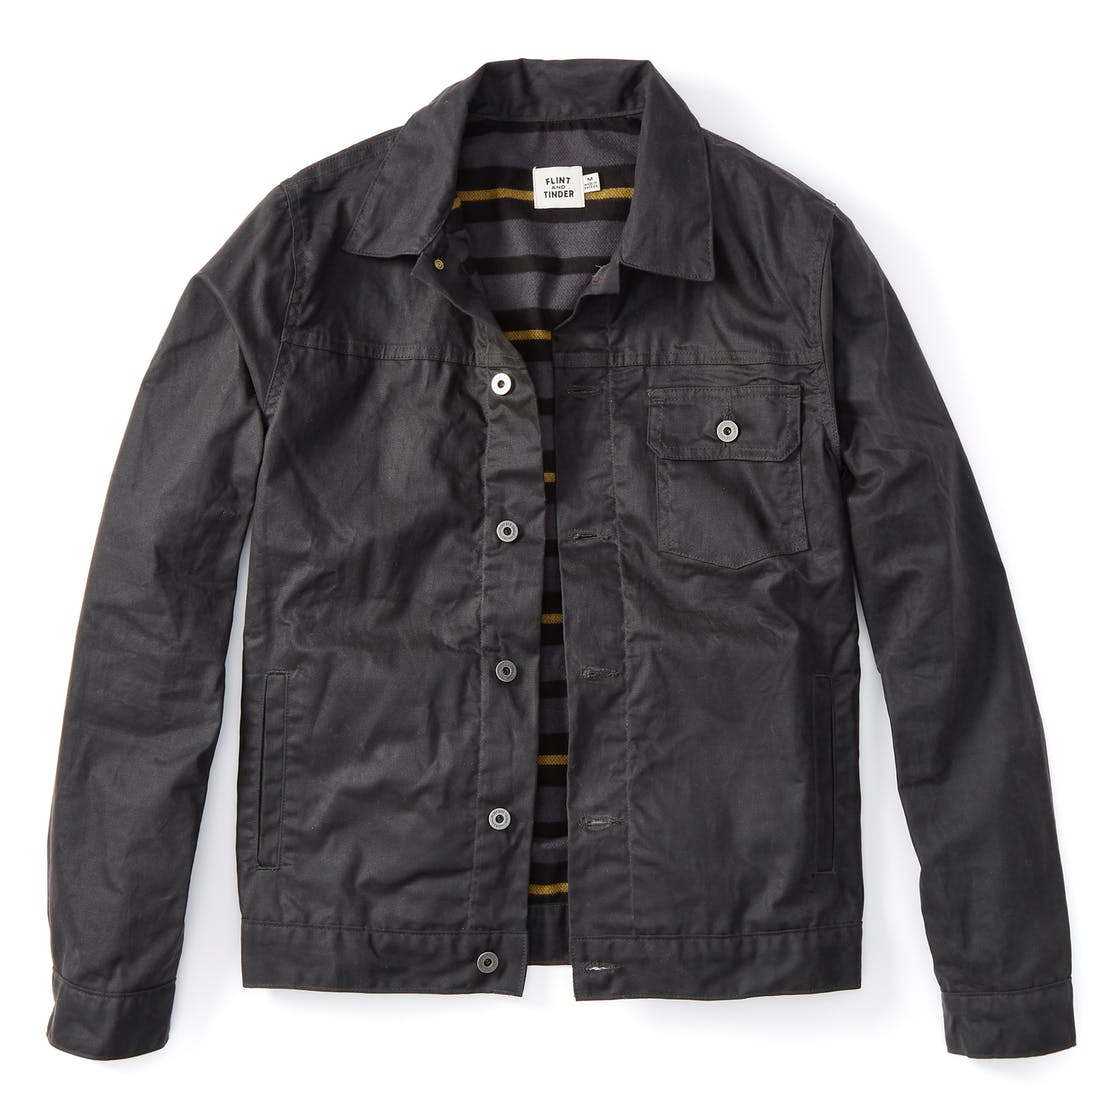 Waxed Trucker Jacket - Waterproof and flannel lined. ($220)